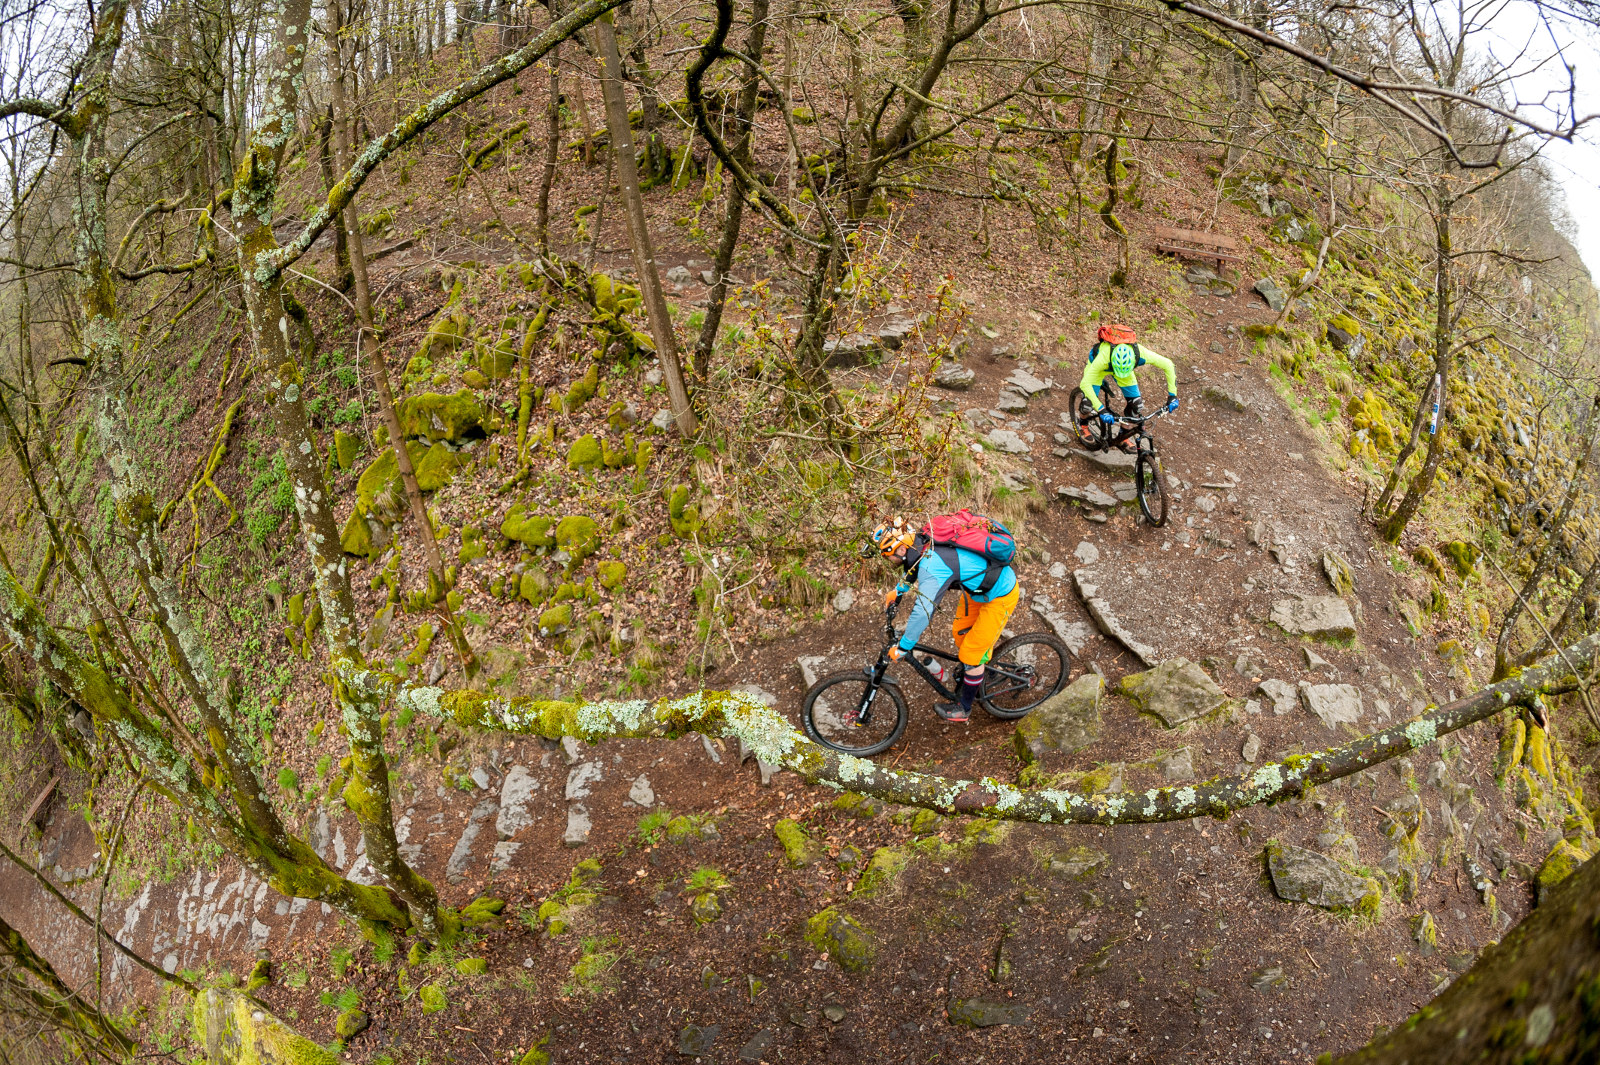 Rhöner Trails